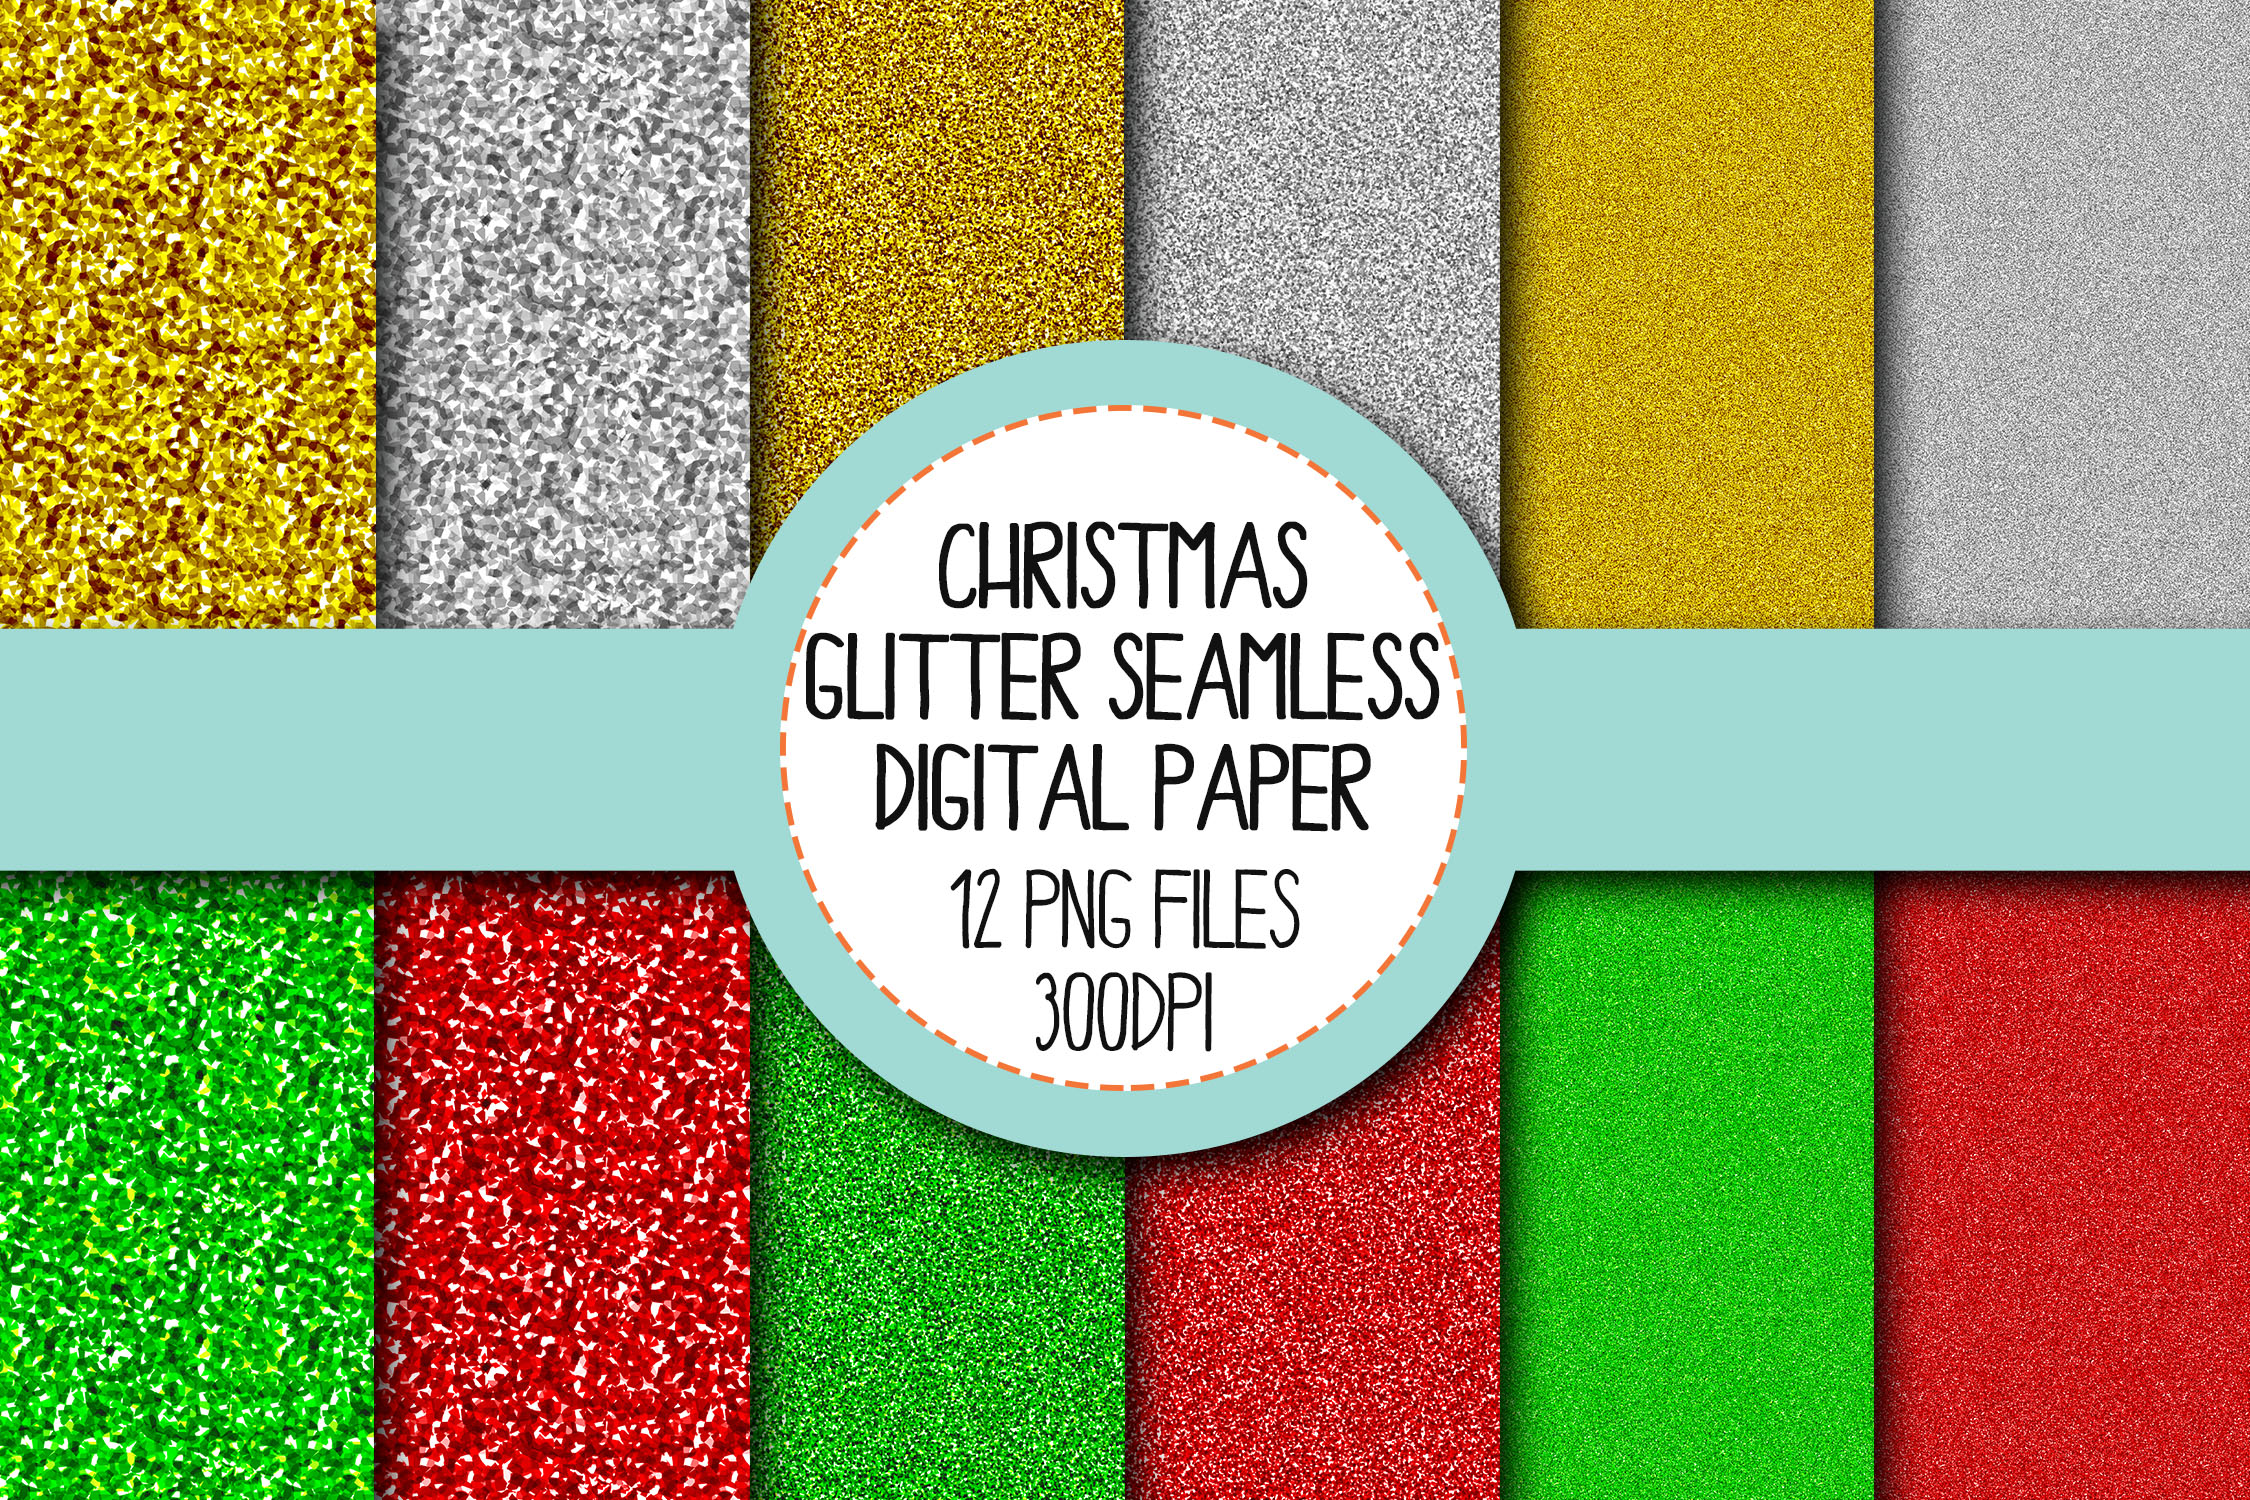 Christmas Glitter Seamless Digital Papers Set 1 example image 1